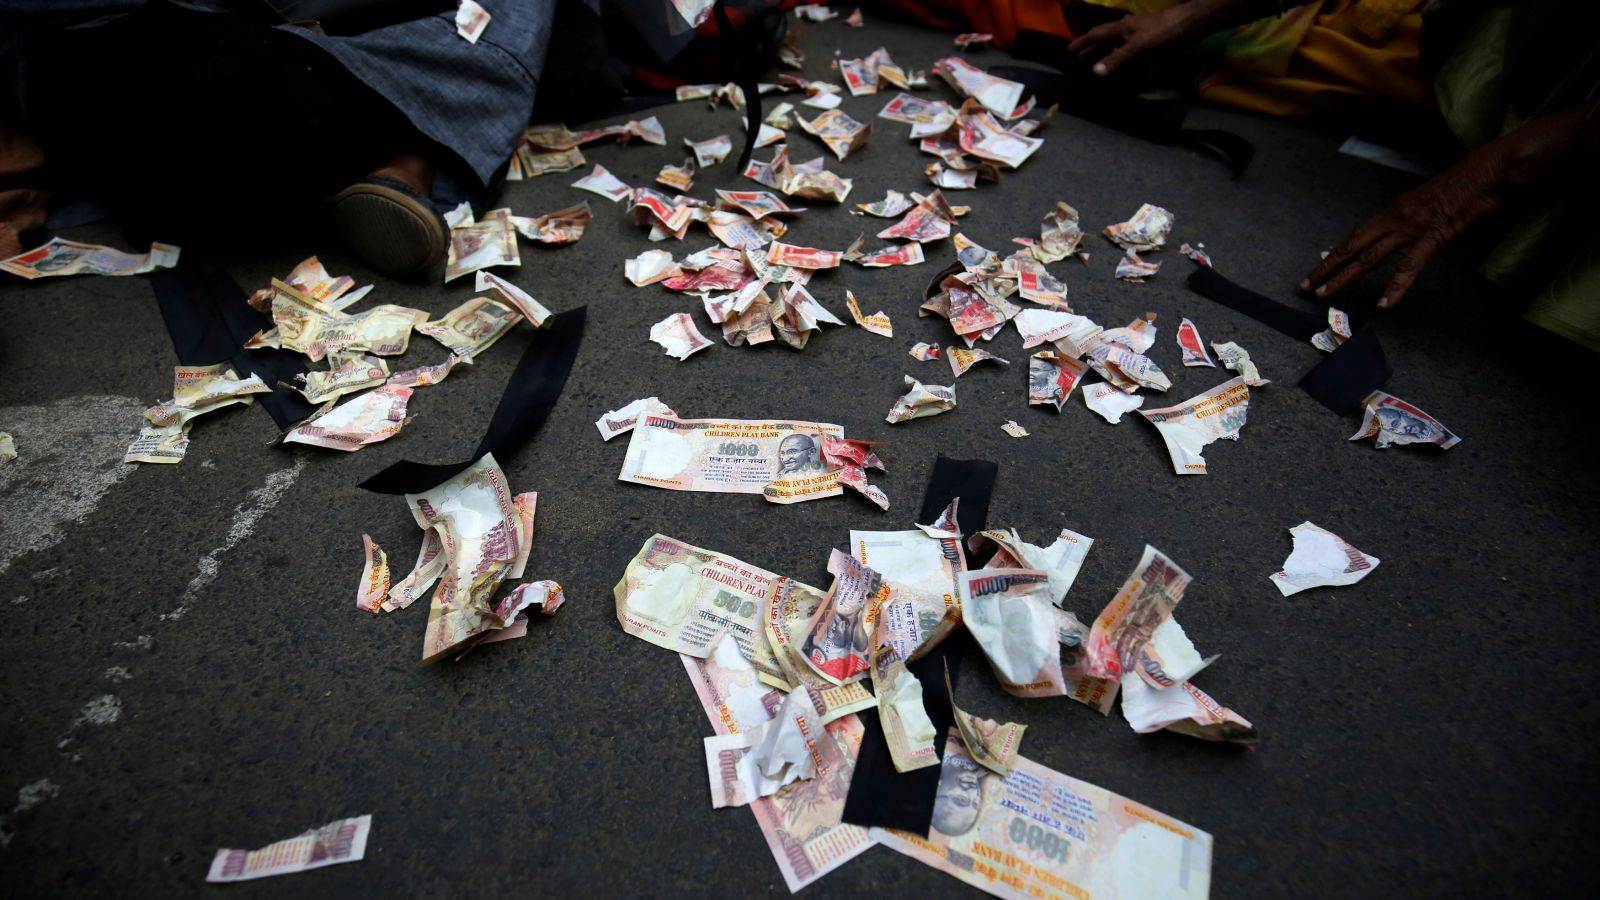 Pieces of old fake 1000 rupee notes lay on the street during a protest, organised by India's main opposition Congress party, to mark a year since demonetisation was implemented by Prime Minister Narendra Modi, in Ahmedabad, India November 8, 2017.